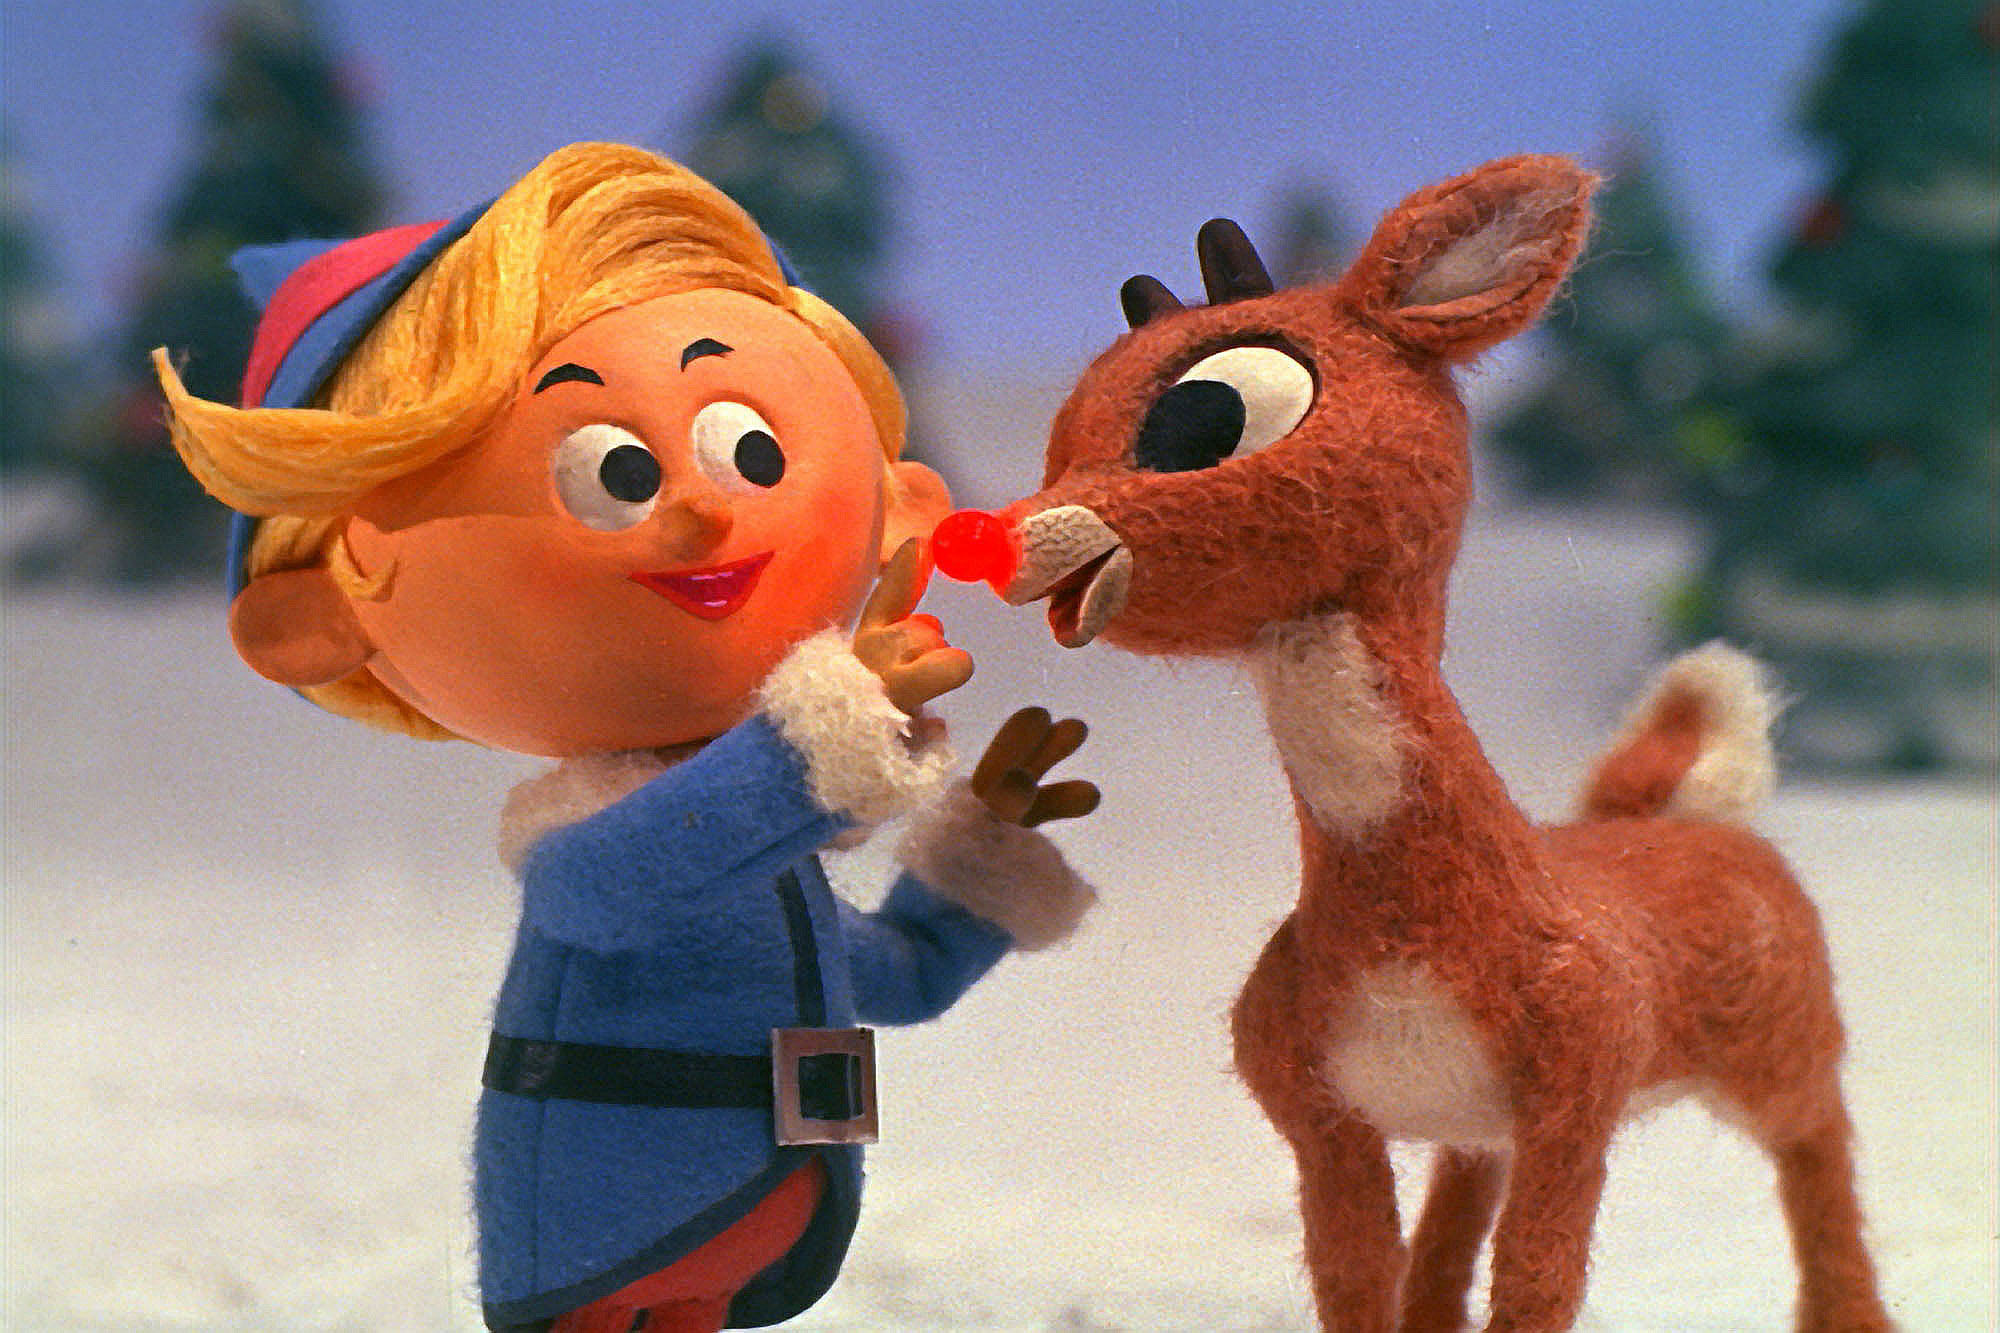 Rudolph the Red-Nosed Reindeer (TV special)